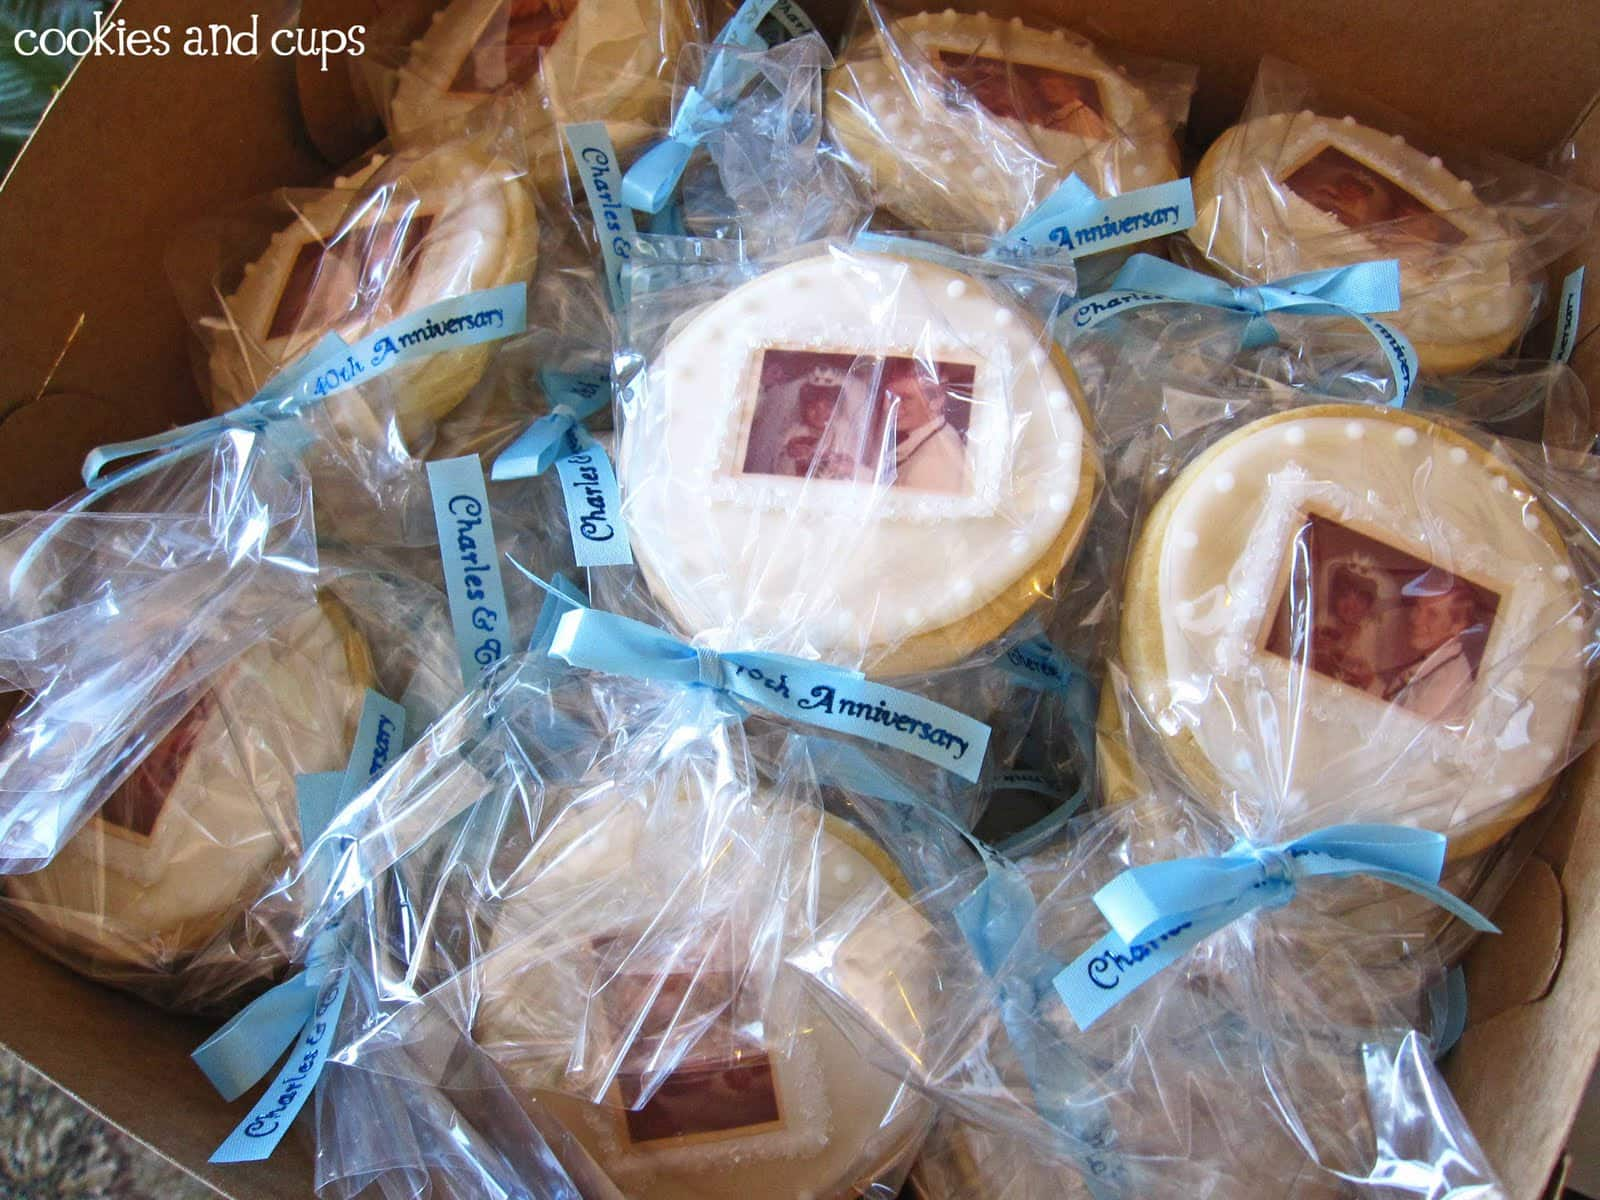 Individually bagged anniversary cookies with blue ribbons